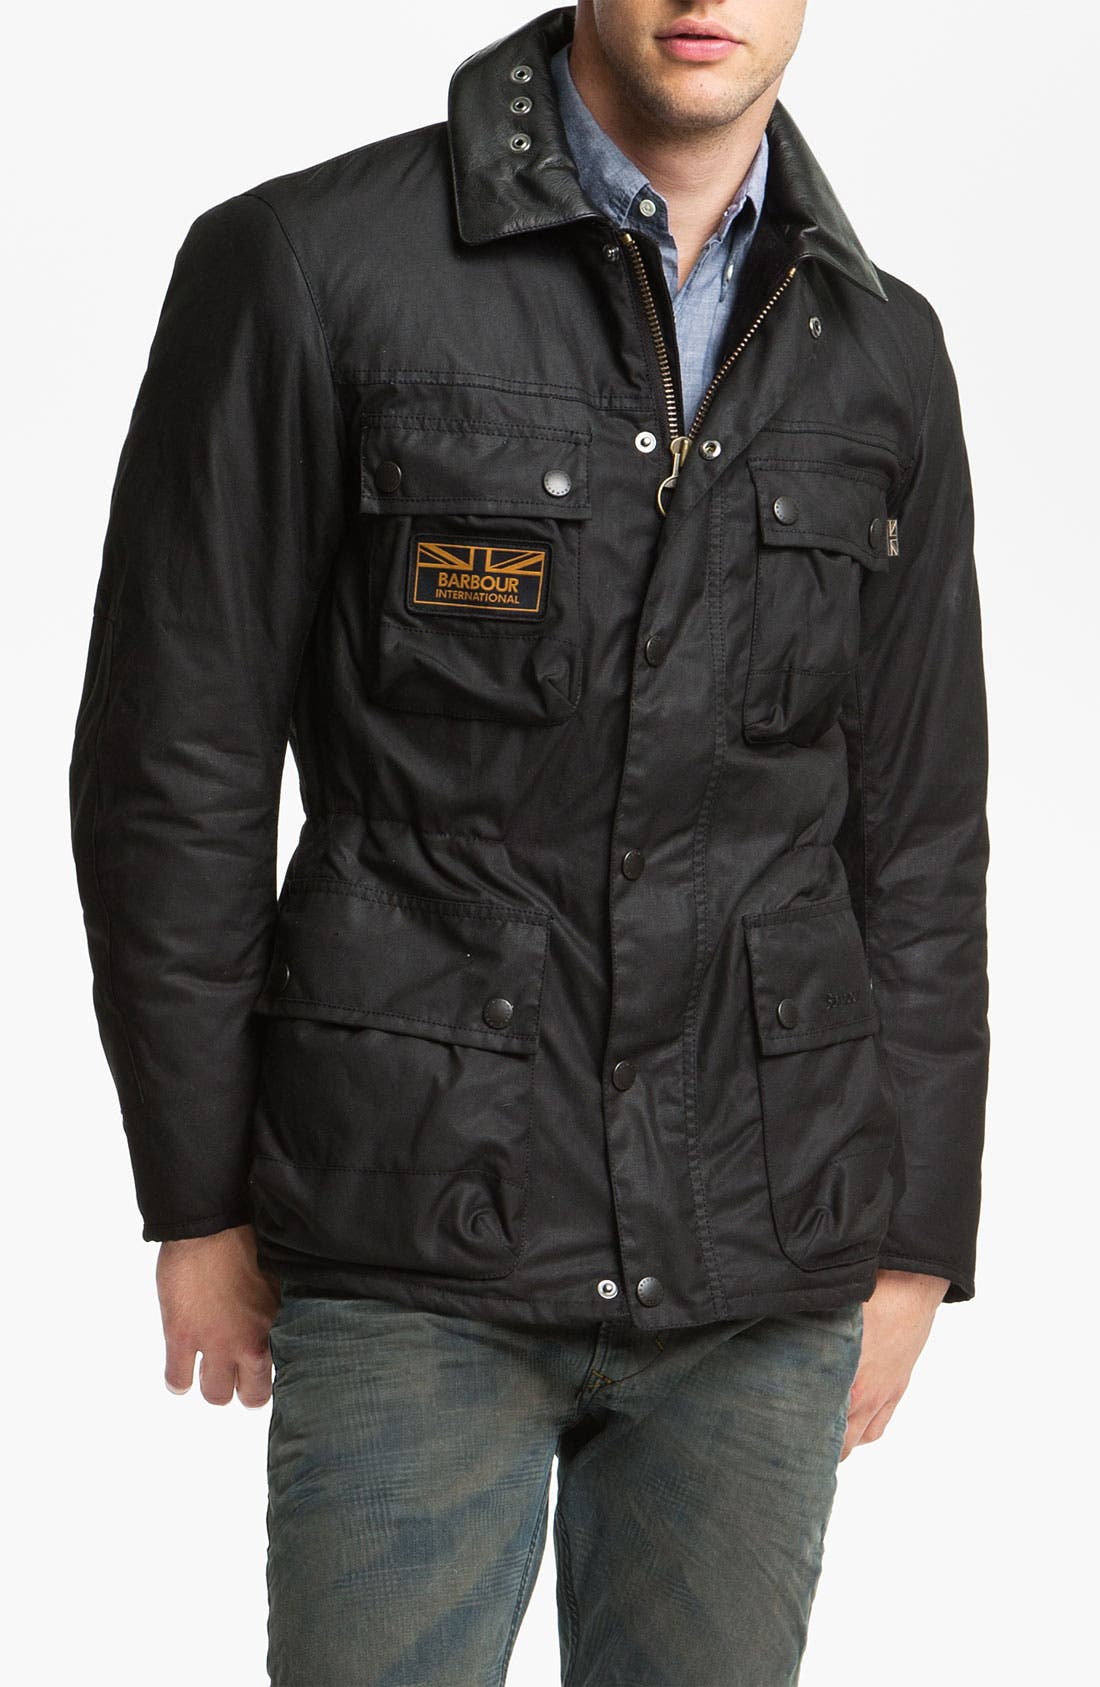 Alternate Image 1 Selected - Barbour 'Surtees' Wax Cotton Jacket